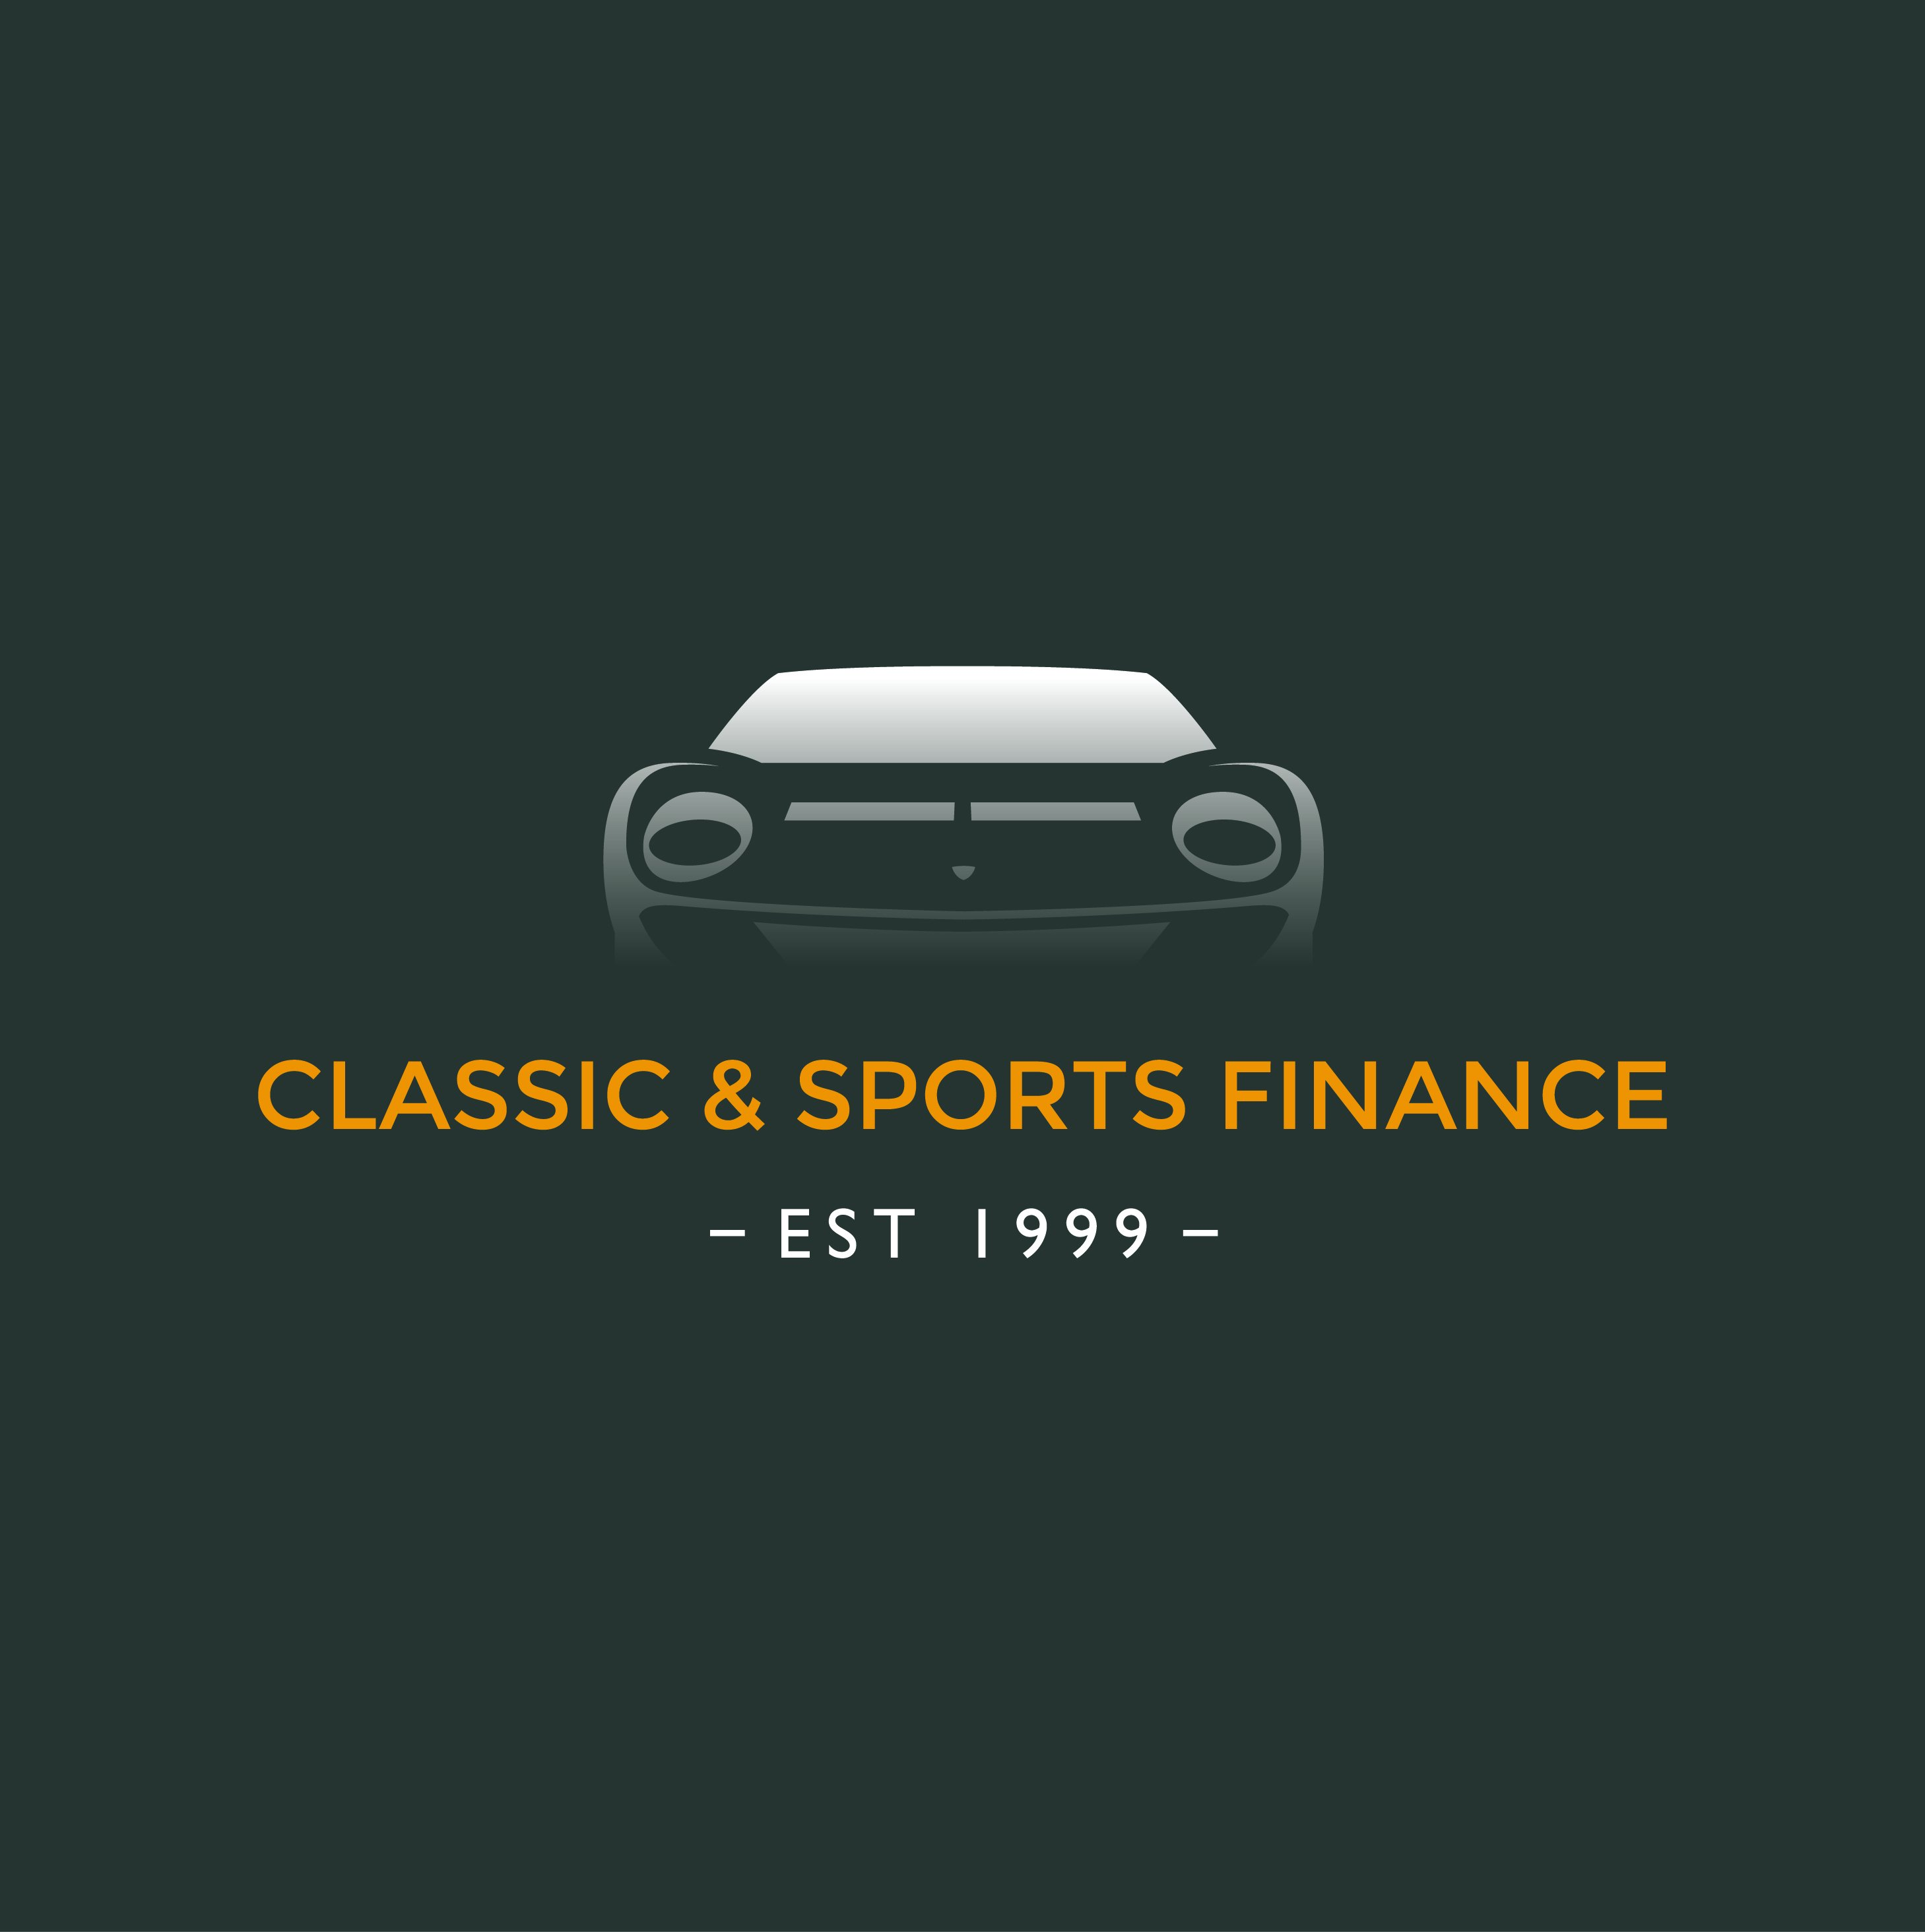 Classic car finance specialists | Classic & Sports Finance